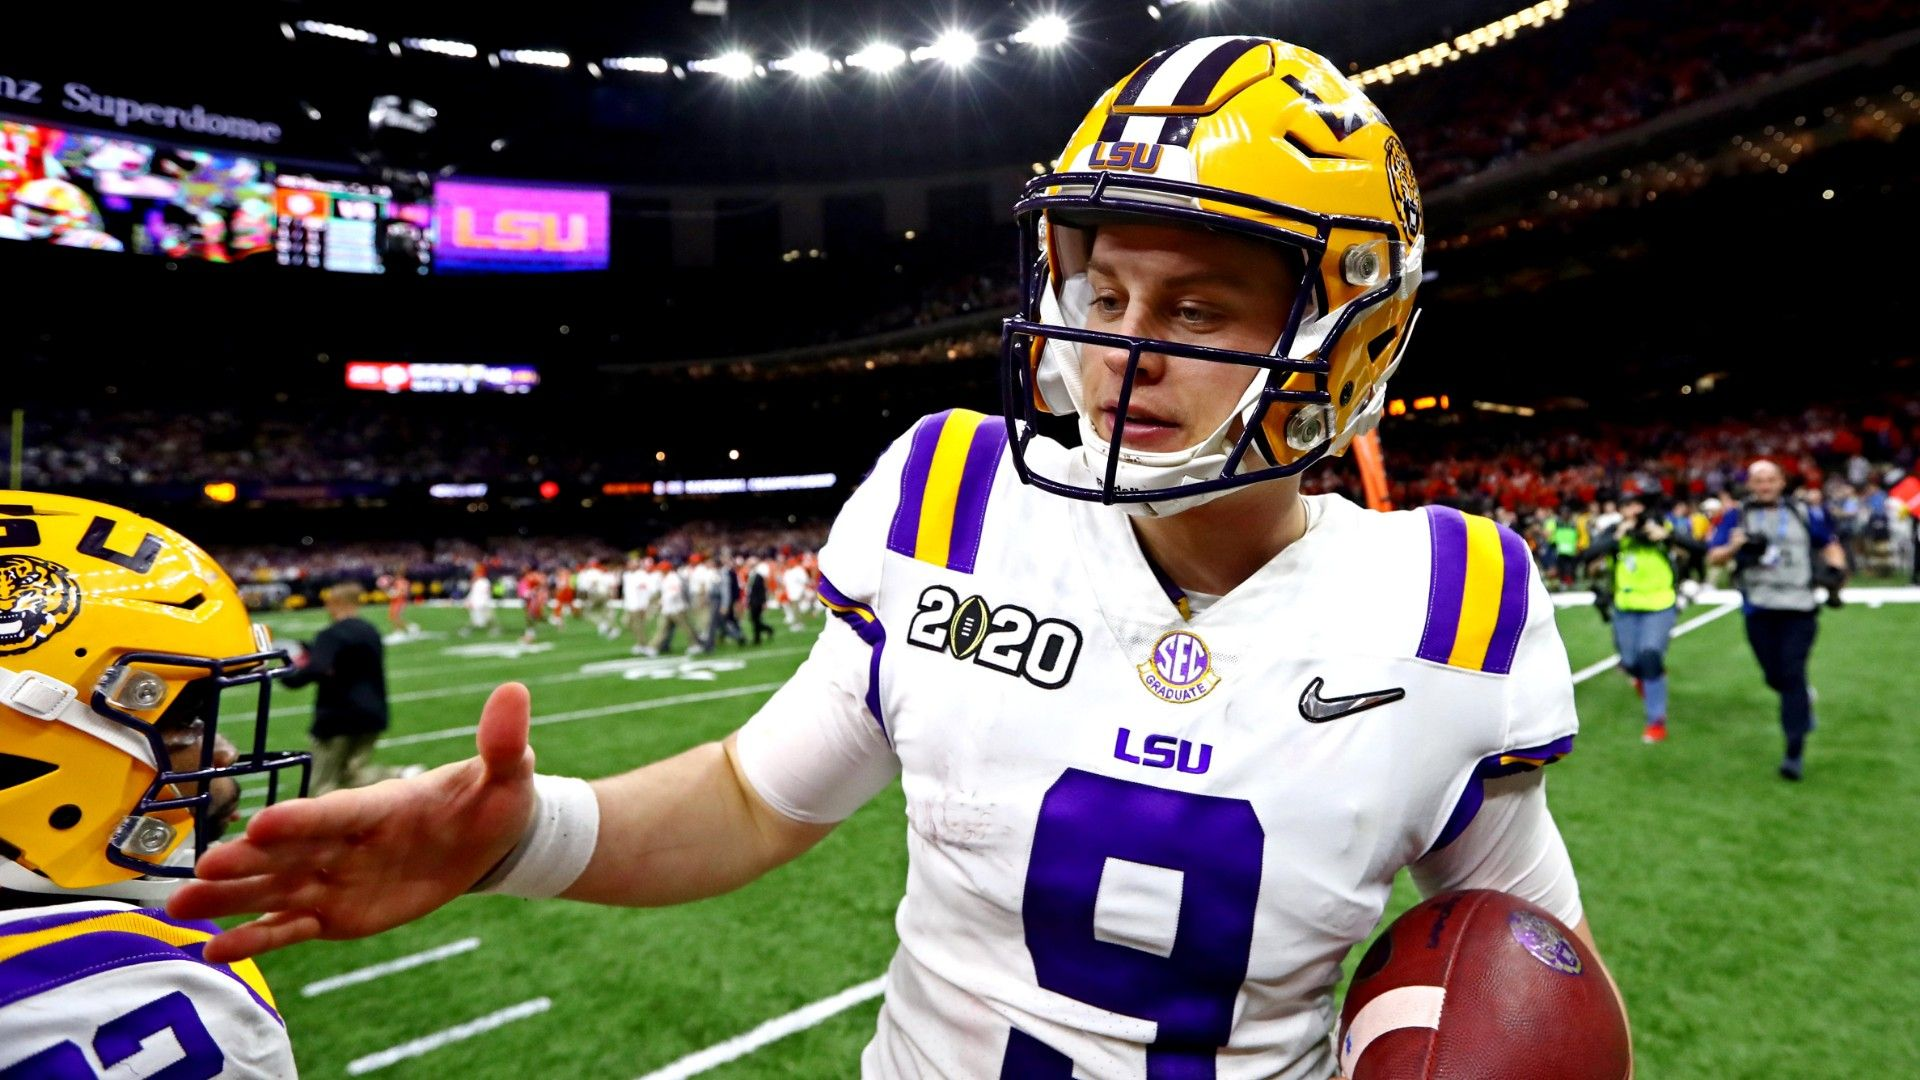 SPORTS ILLUSTRATED MAGAZINE DECEMBER 2 2019 LSU JOE BURROW